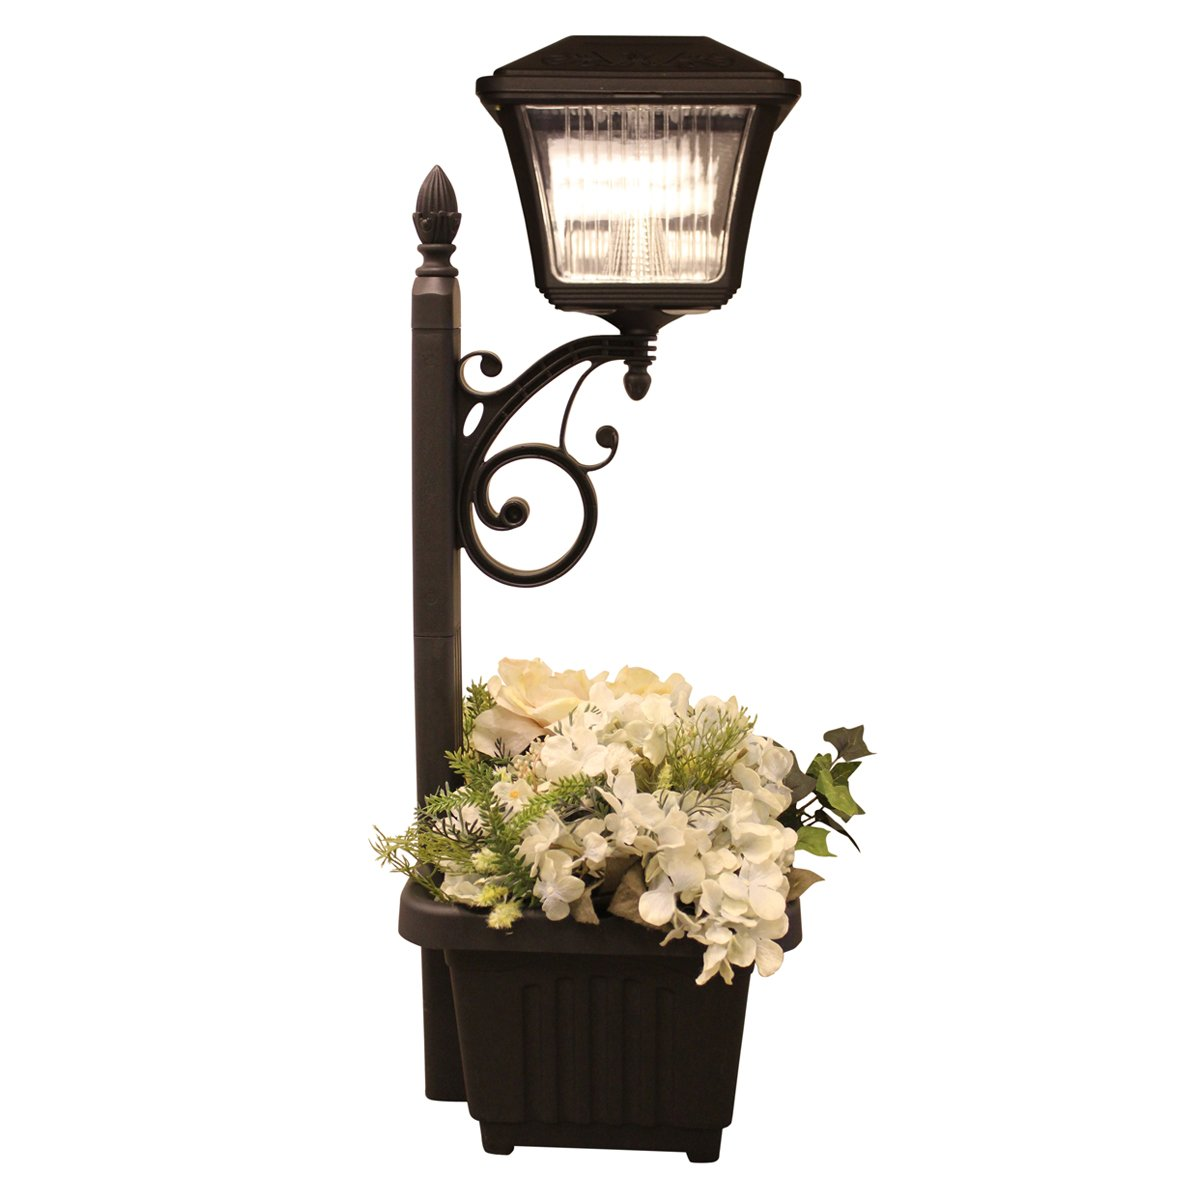 Gama Sonic GS-111 Pathway Planter or Stake Outdoor Solar Accent Walkway or Step Light, Bright White LED, Black